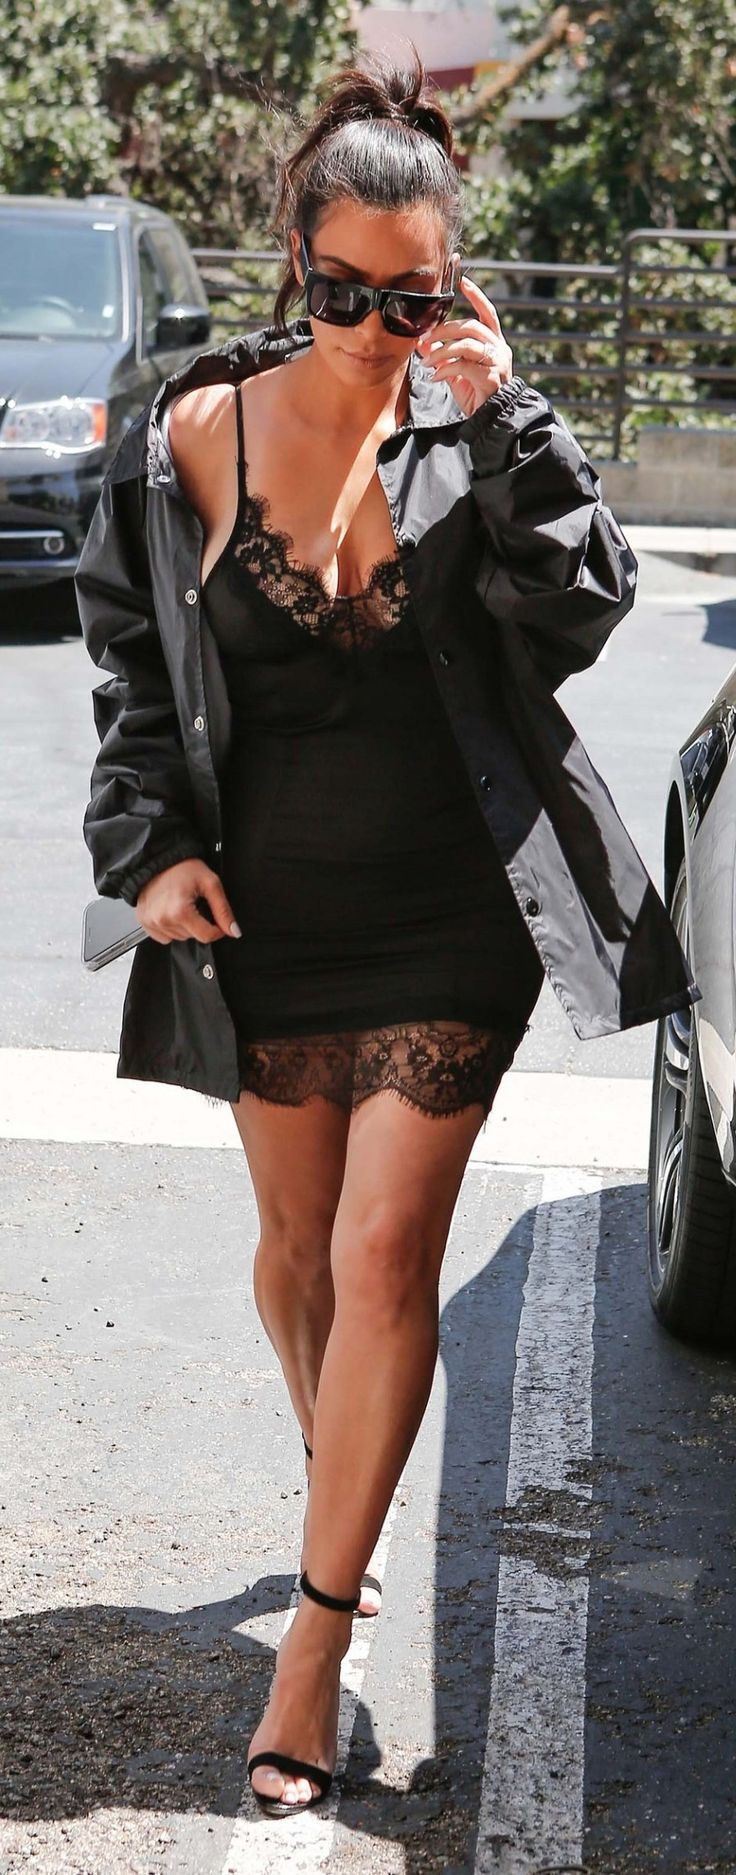 Kim Kardashian West in a Life of Pablo jacket, My Style Mode black slip dress, Céline sunglasses, and Manolo Blahnik sandals. http://www.trovamoda.com/styles/kim-kardashian-style